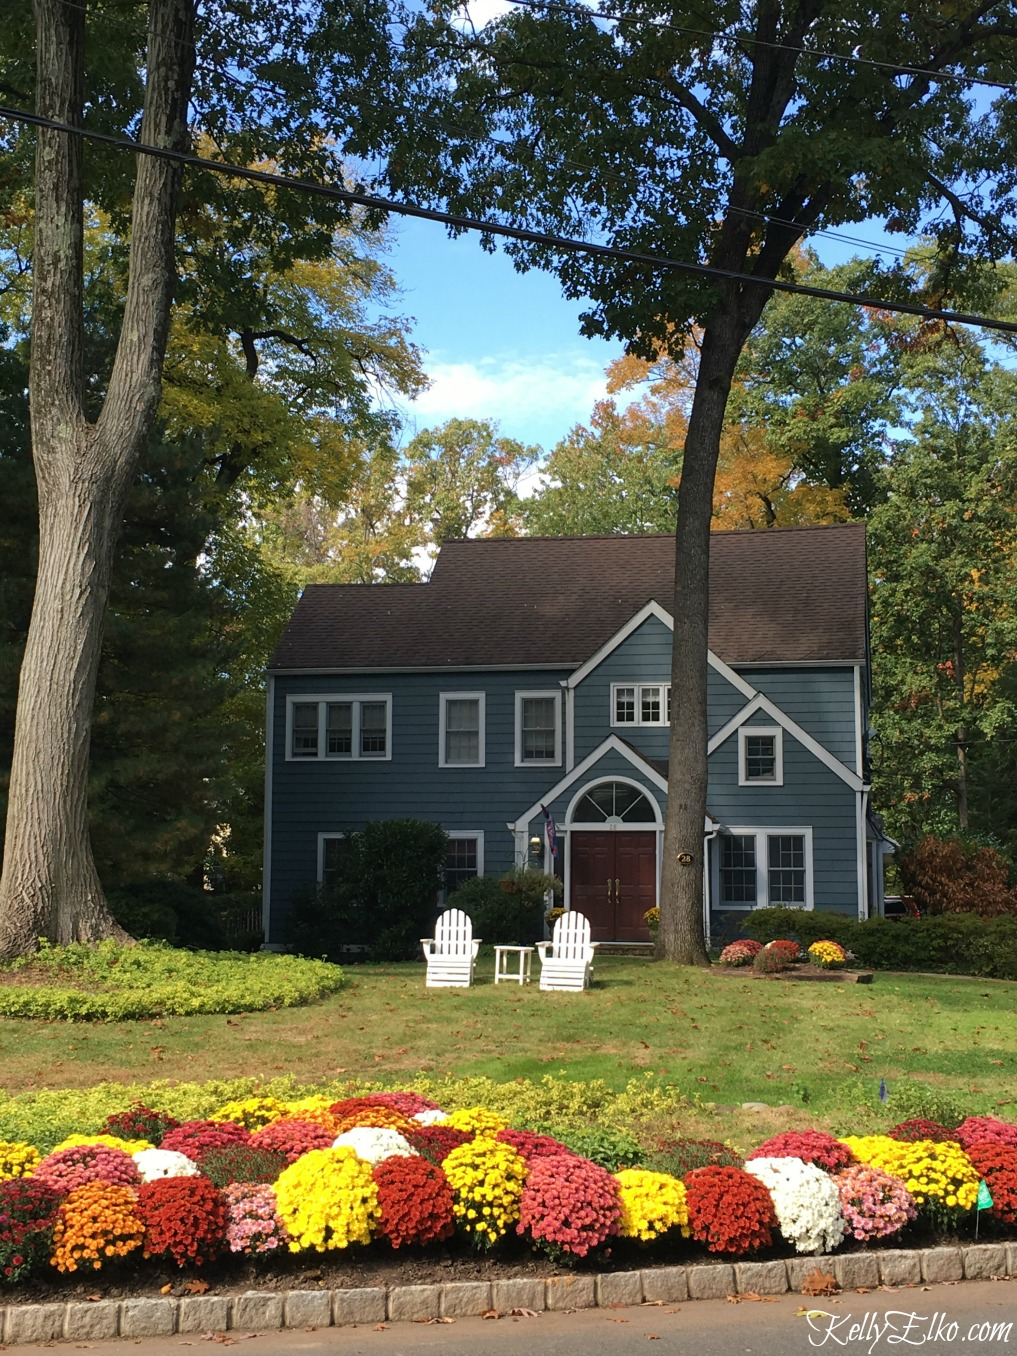 Charming blue house with lots of mums - see more fall homes with curb appeal kellyelko.com